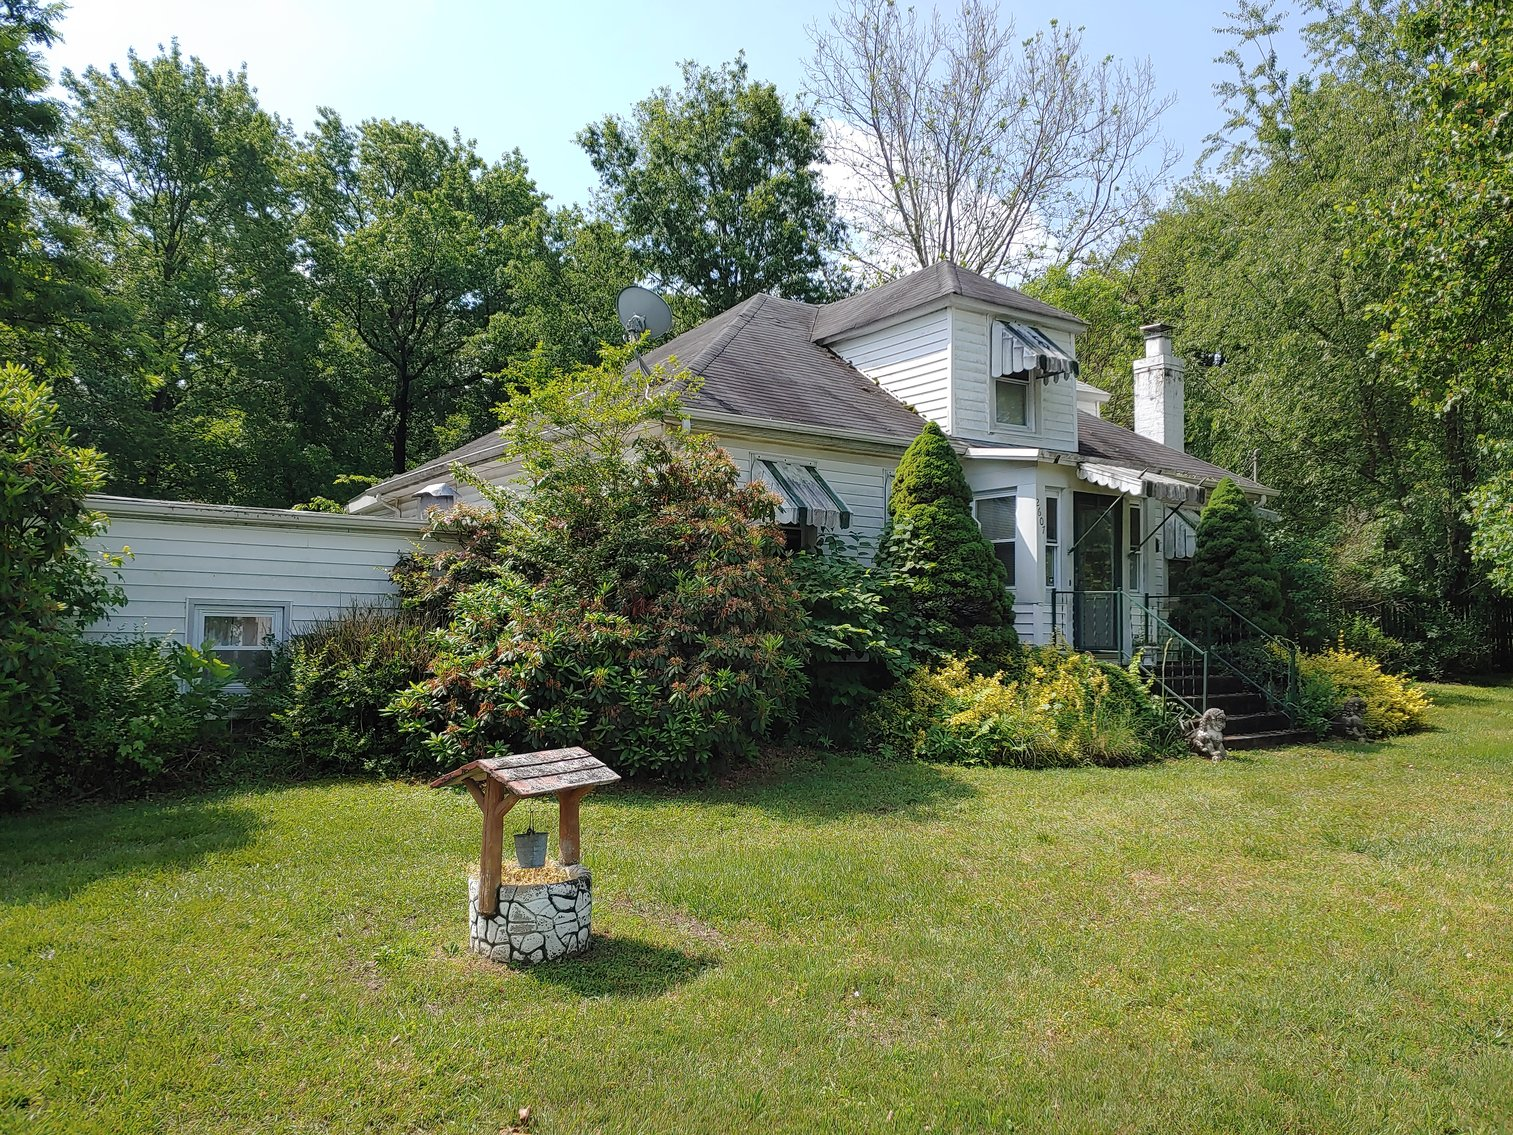 2 STORY VINYL SIDED 3 BR, 2 BATH HOME, 2 PARCELS, ZONED R-2, 2.24+/- ACRES PLUS REMAINING PERSONAL PROPERTY